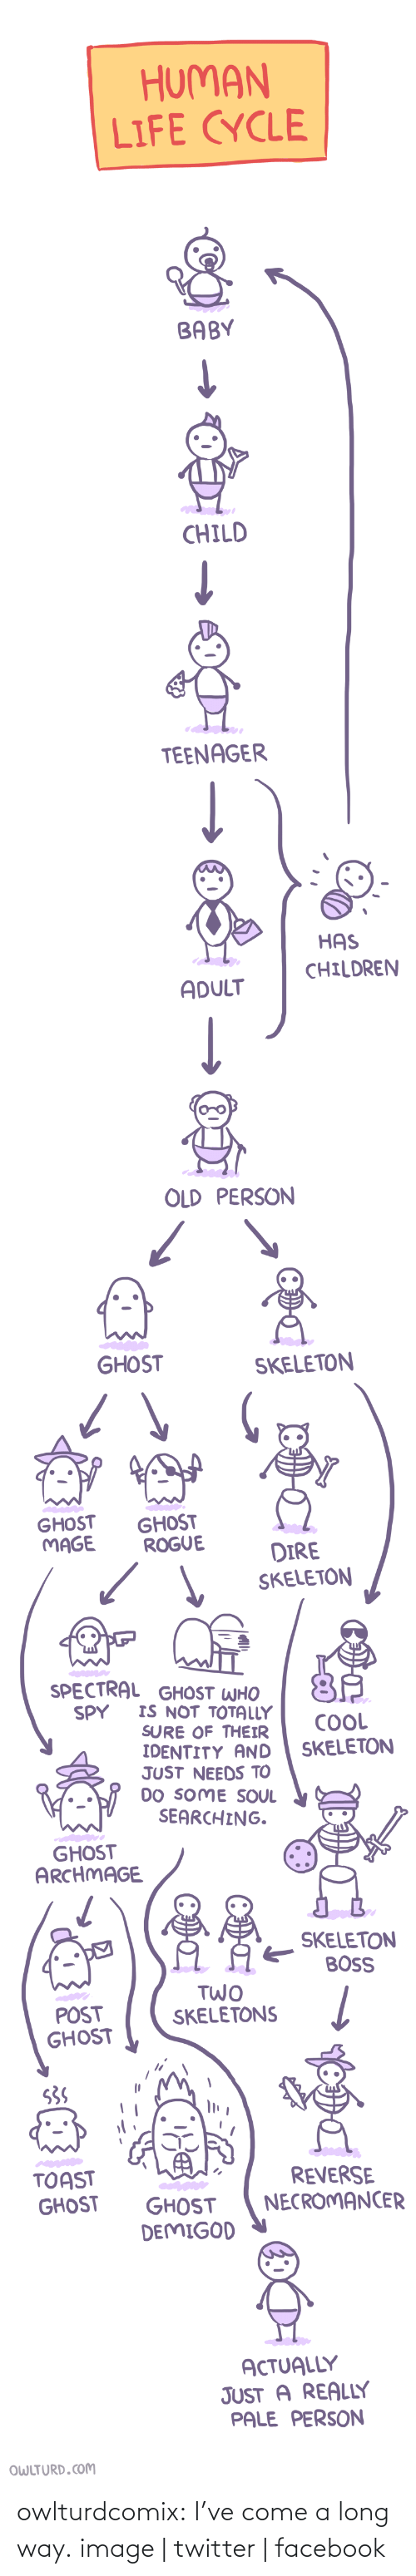 Shenanigansen: HUMAN  LIFE CYCLE  BABY  CHILD   TEENAGER  HAS  CHILDREN  ADULT  OLD PERSON   GHOST  SKELETON  GHOST  MAGE  GHOST  ROGUE  DIRE  SKELETON   SPECTRAL GHOST WHO  IS NOT TOTALLY  SURE OF THEIR  IDENTITY AND  JUST NEEDS TO  DO SOME SOUL  SEARCHING.  SPY  COOL  SKELETON  GHOST  ARCHMAGE  SKELETON  BOSS  TWO   POST  GHOST  SKELETONS  S3S  TOAST  GHOST  REVERSE  NECROMANCER  GHOST  DEMIGOD  ACTUALLY  JUST A REALLY  PALE PERSON  OWLTURD.COM owlturdcomix:  I've come a long way. image | twitter | facebook